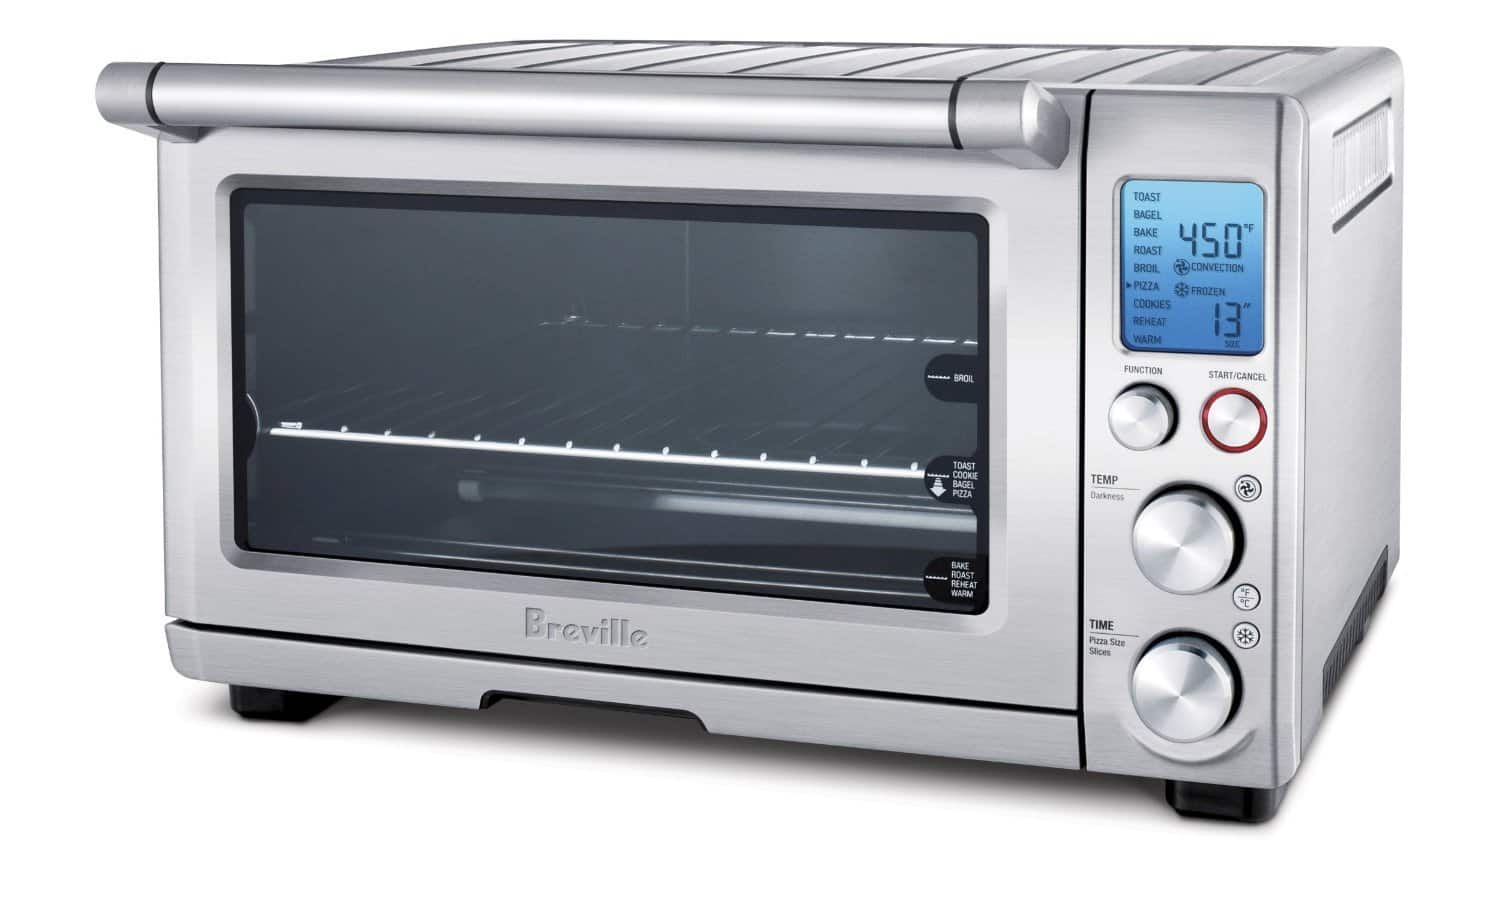 Breville BOV800XL Smart Oven - $212 + tax + free shipping (Amazon)